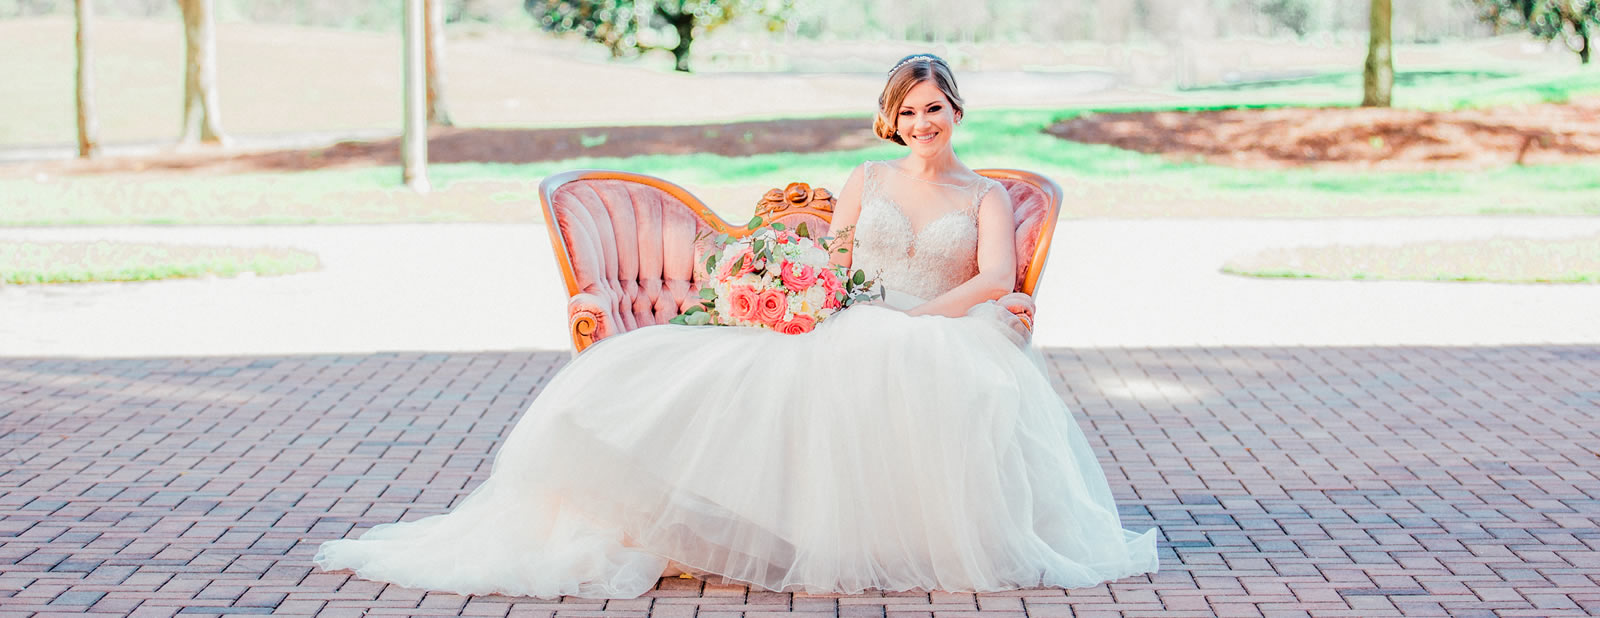 Bride sitting outside on couch holding flowerrs